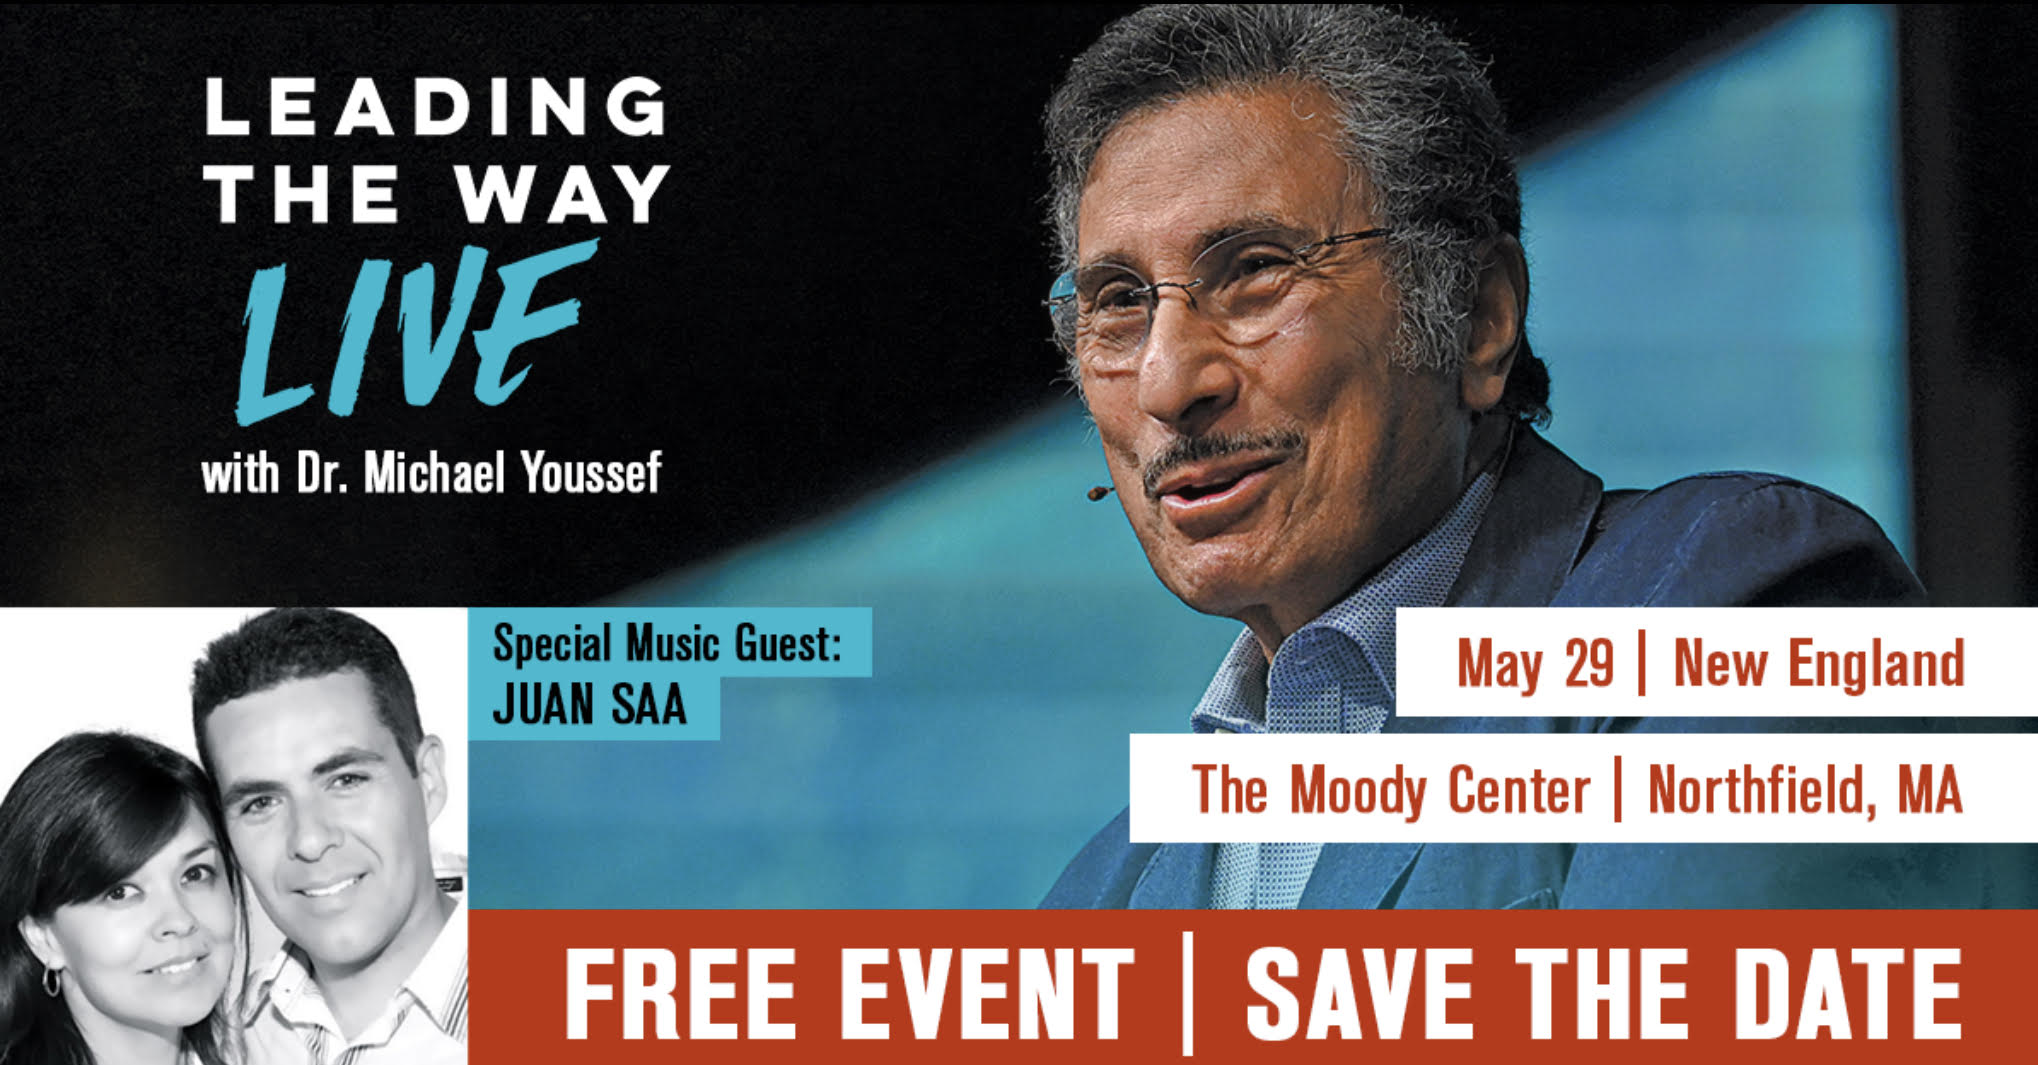 Leading The Way LIVE with Dr. Michael Youssef